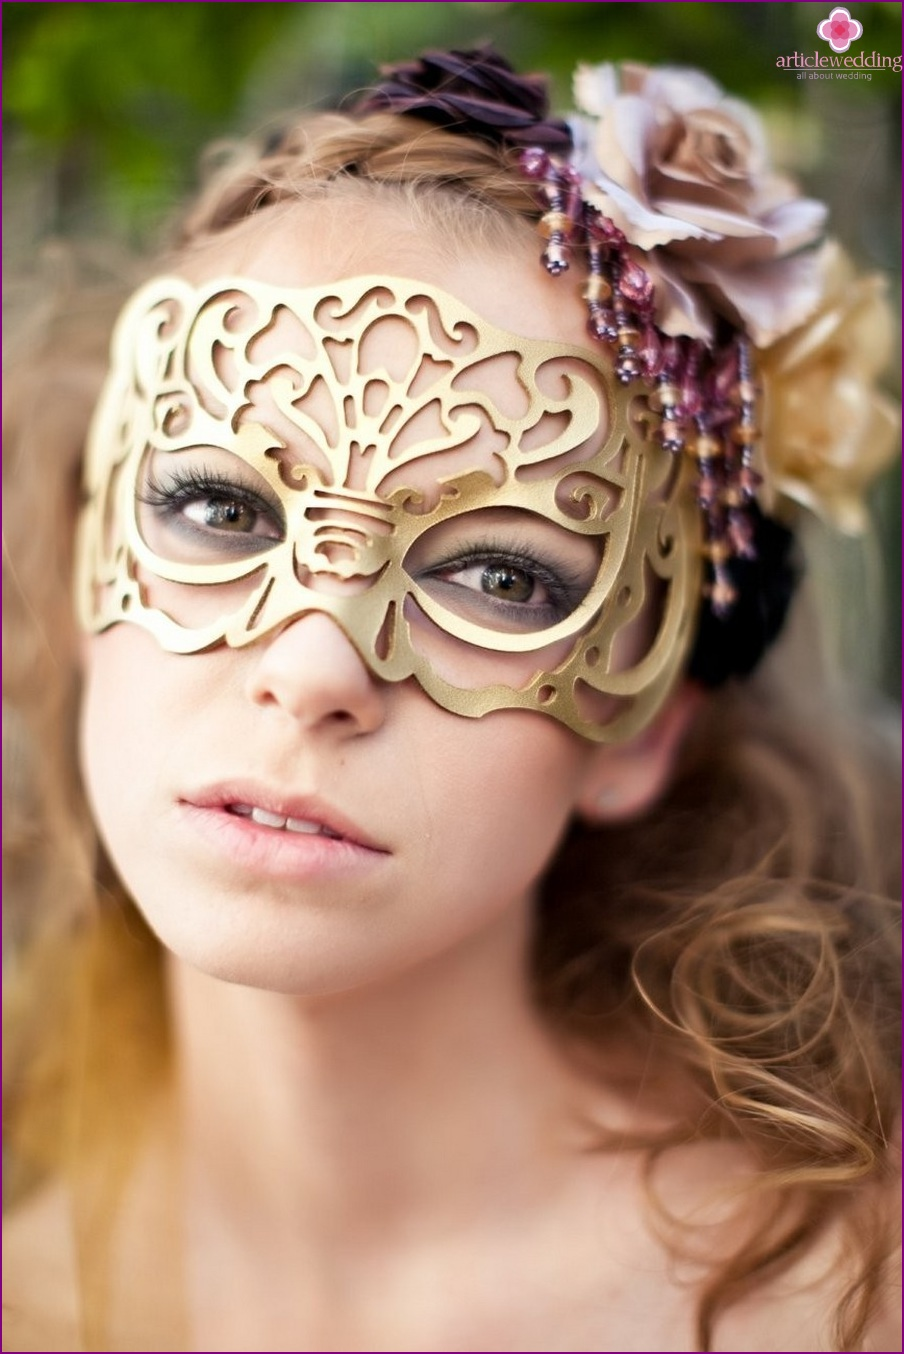 Masks for a wedding in the style of masquerade